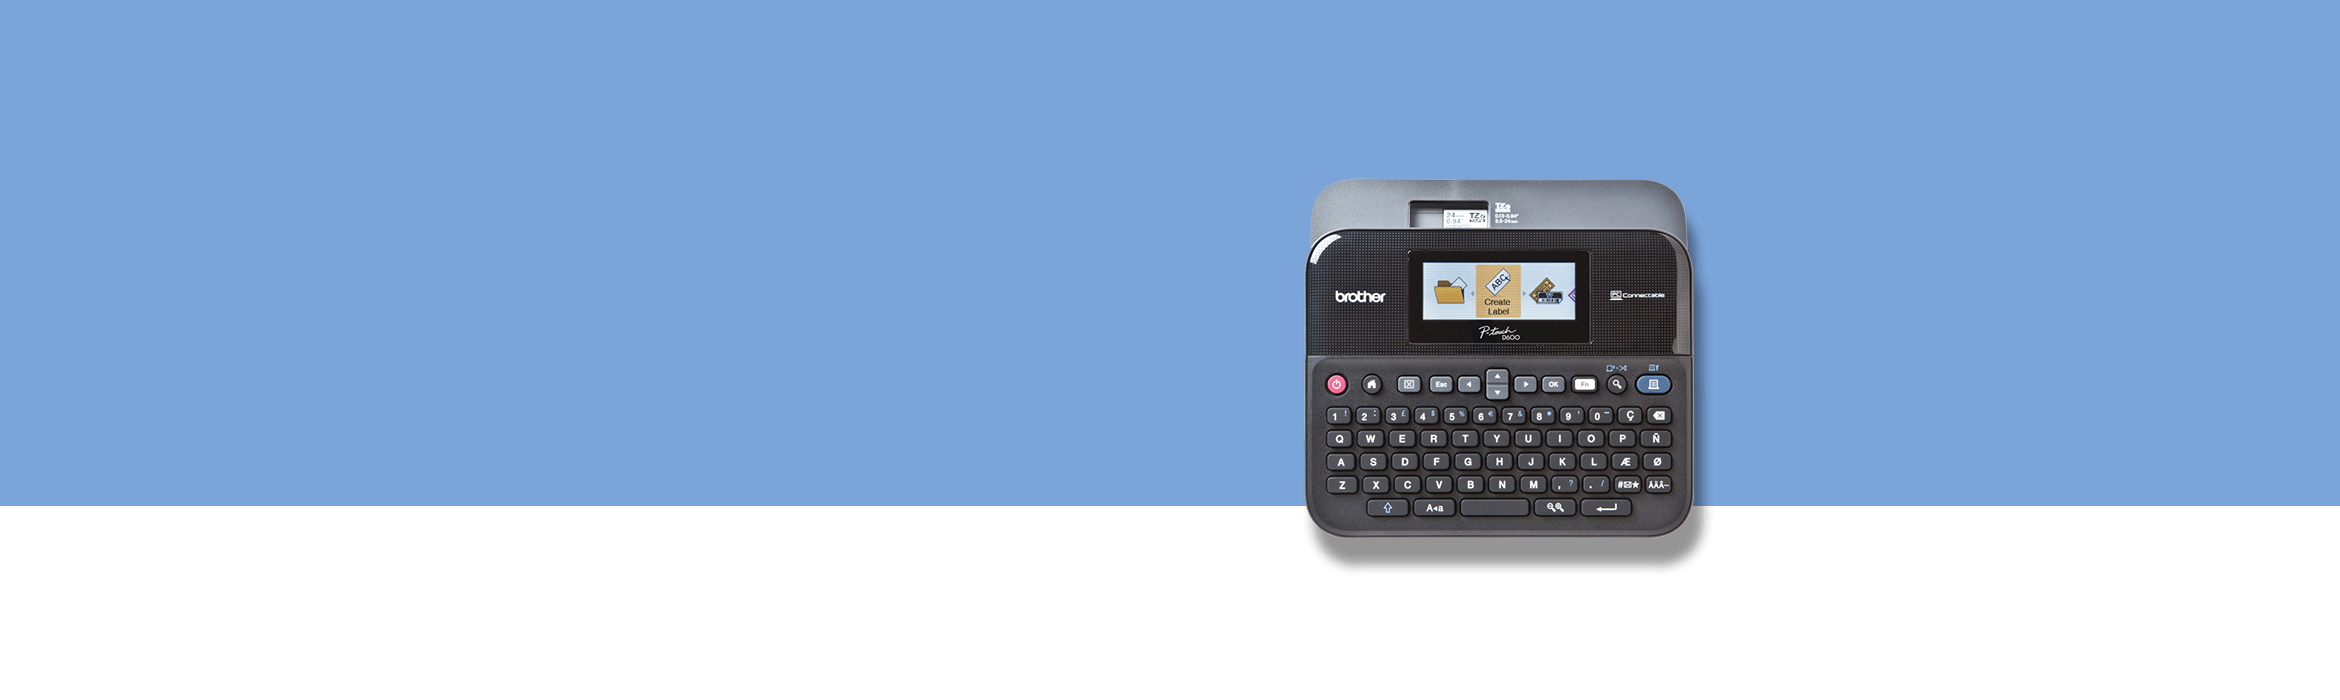 ptouch label printer